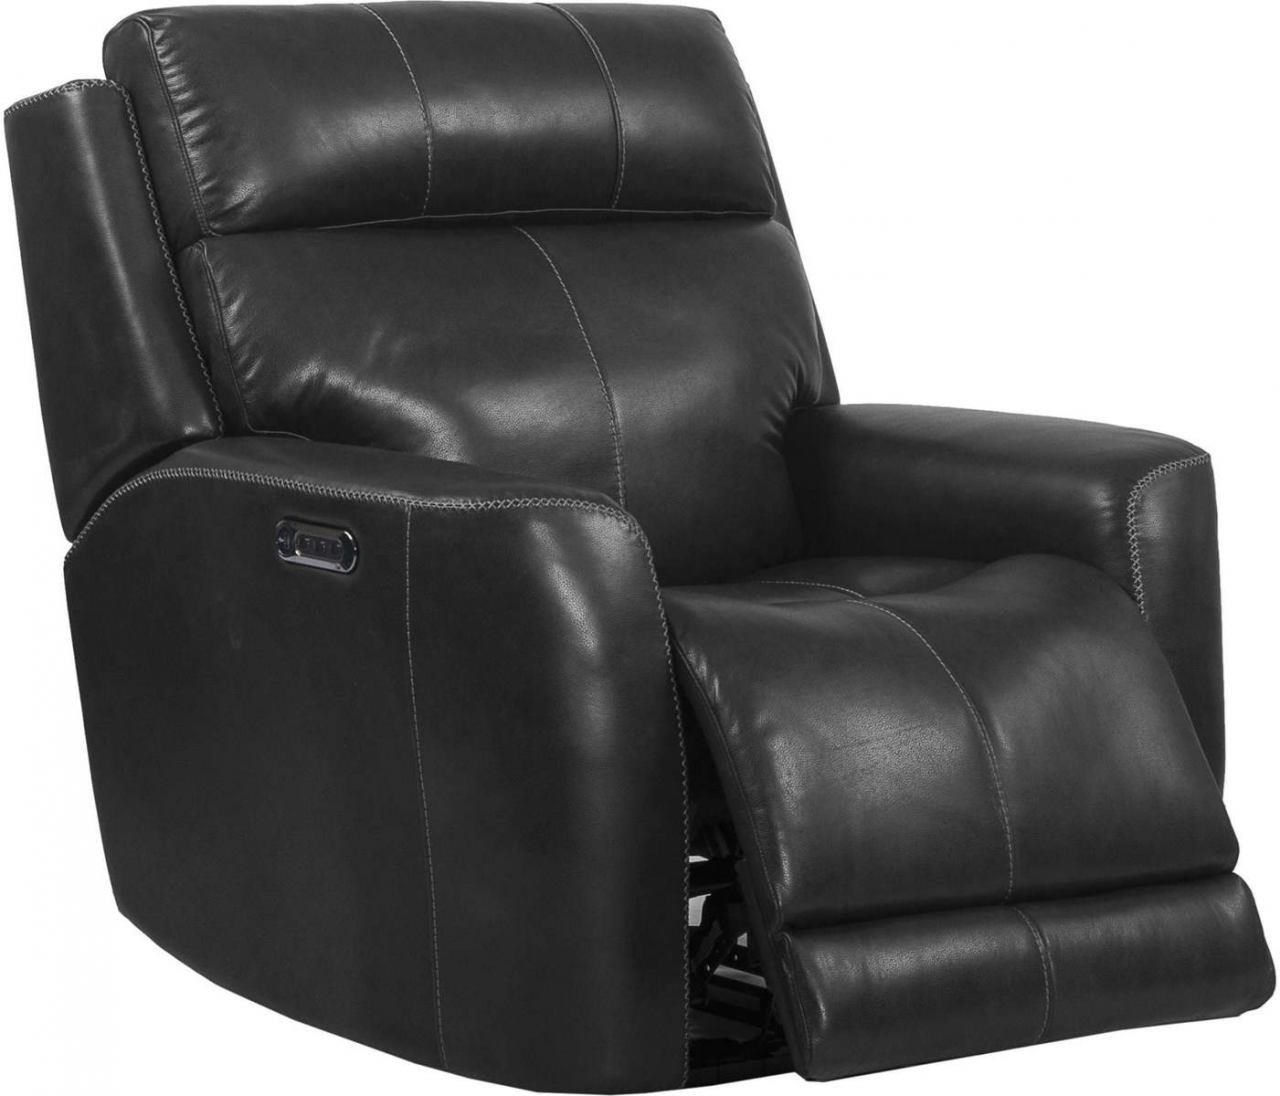 Electric Recliner Leather Chairs Pravin Leather Match Power Recliner With Power Headrest And Power Lumbar Support By Parker Scott At Morris Home